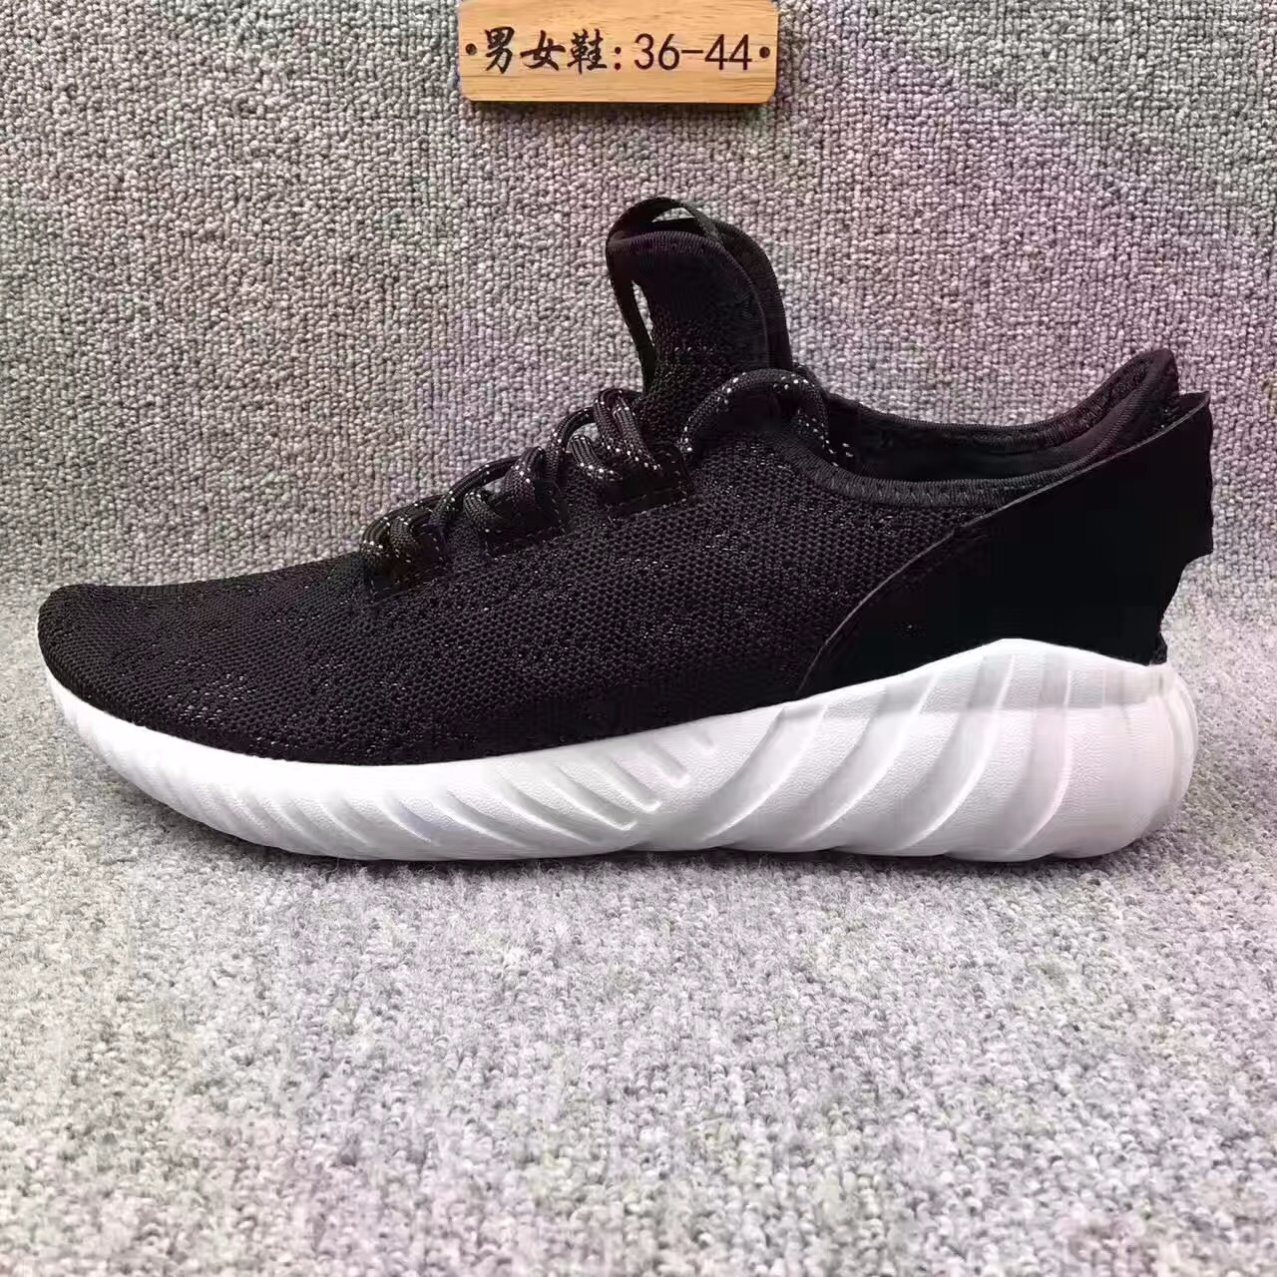 2017 New Style Footwear Branded Shoes Fashion Athletic Shoes Sports Shoes Running Shoes for Men Women′s Kids Casual Shoes